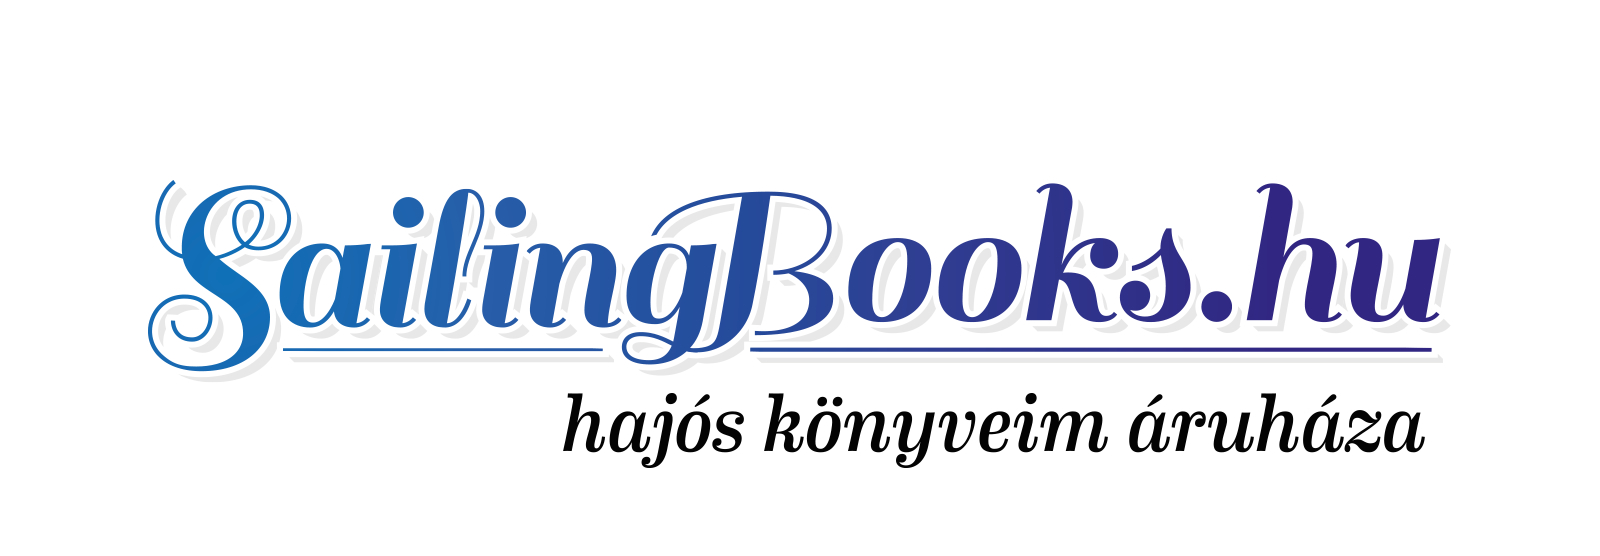 sailing-books-logo.jpg